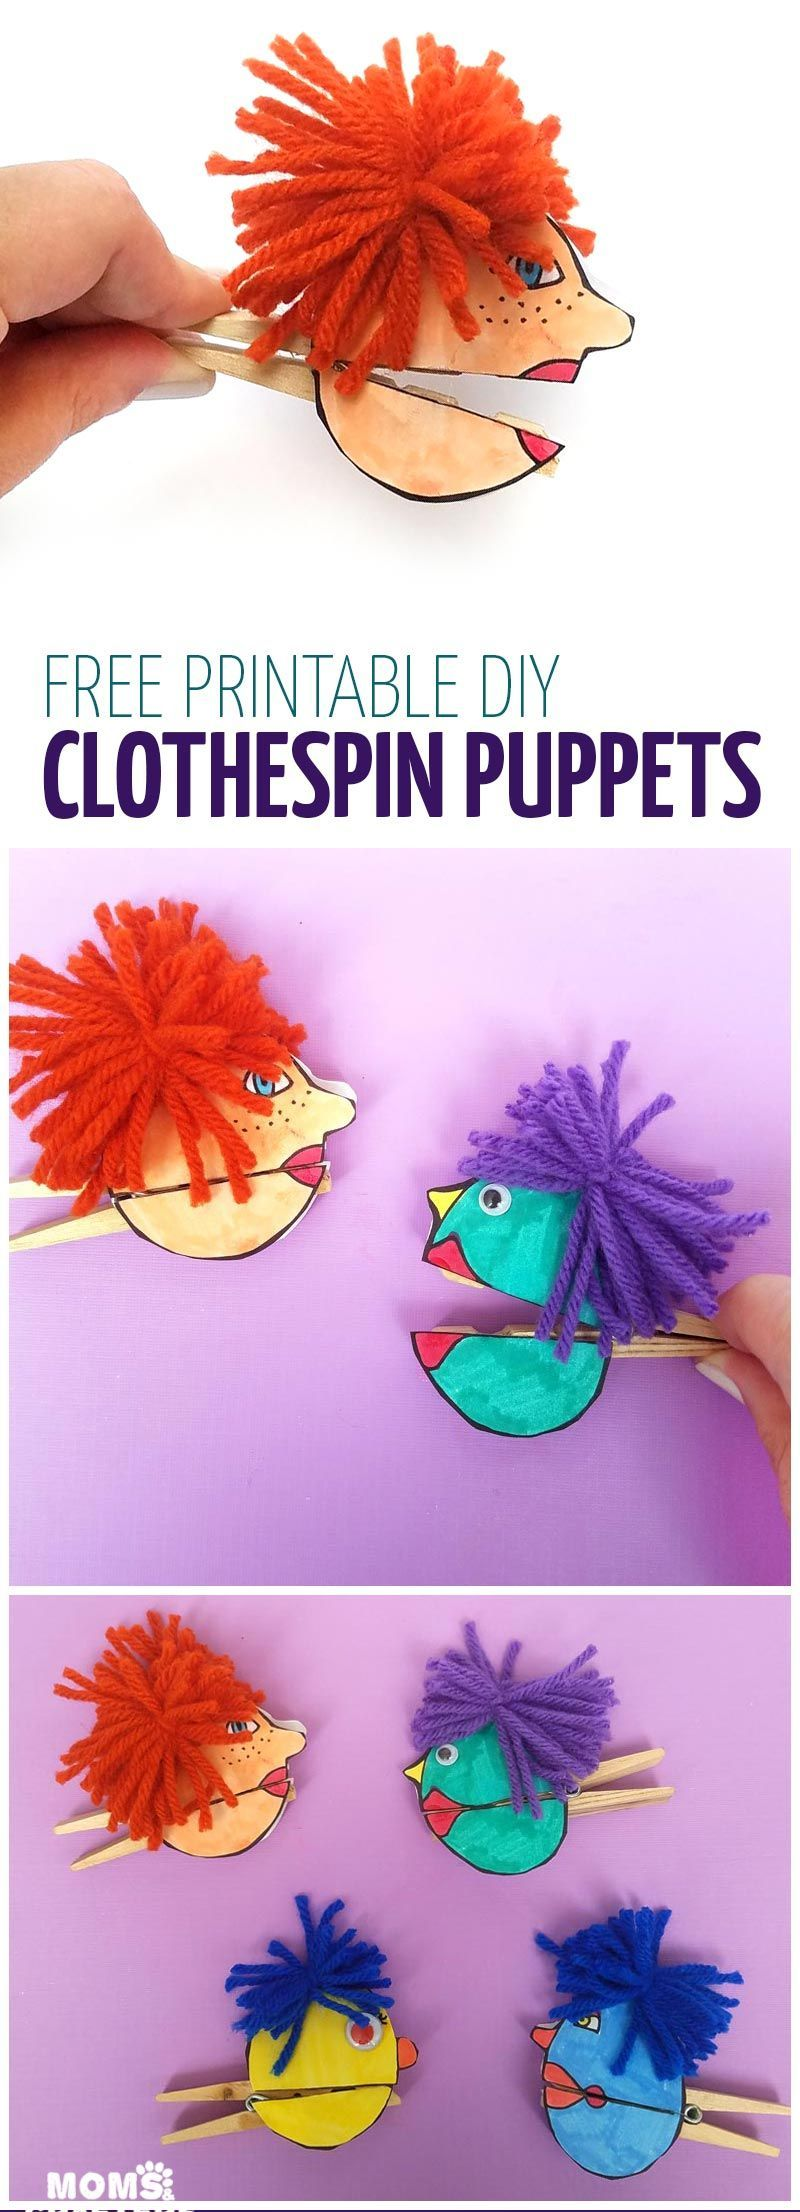 these quirky paper puppets I love these adorable quirky paper puppets - with mouthes that open and close with a clothespin! Love this unique, easy clothespin craft for kids (or adults). It includes a free printable for the faces, which you can then color in, and add yarn and googly eyes for character. This free printable coloring page craft is so cool!I love